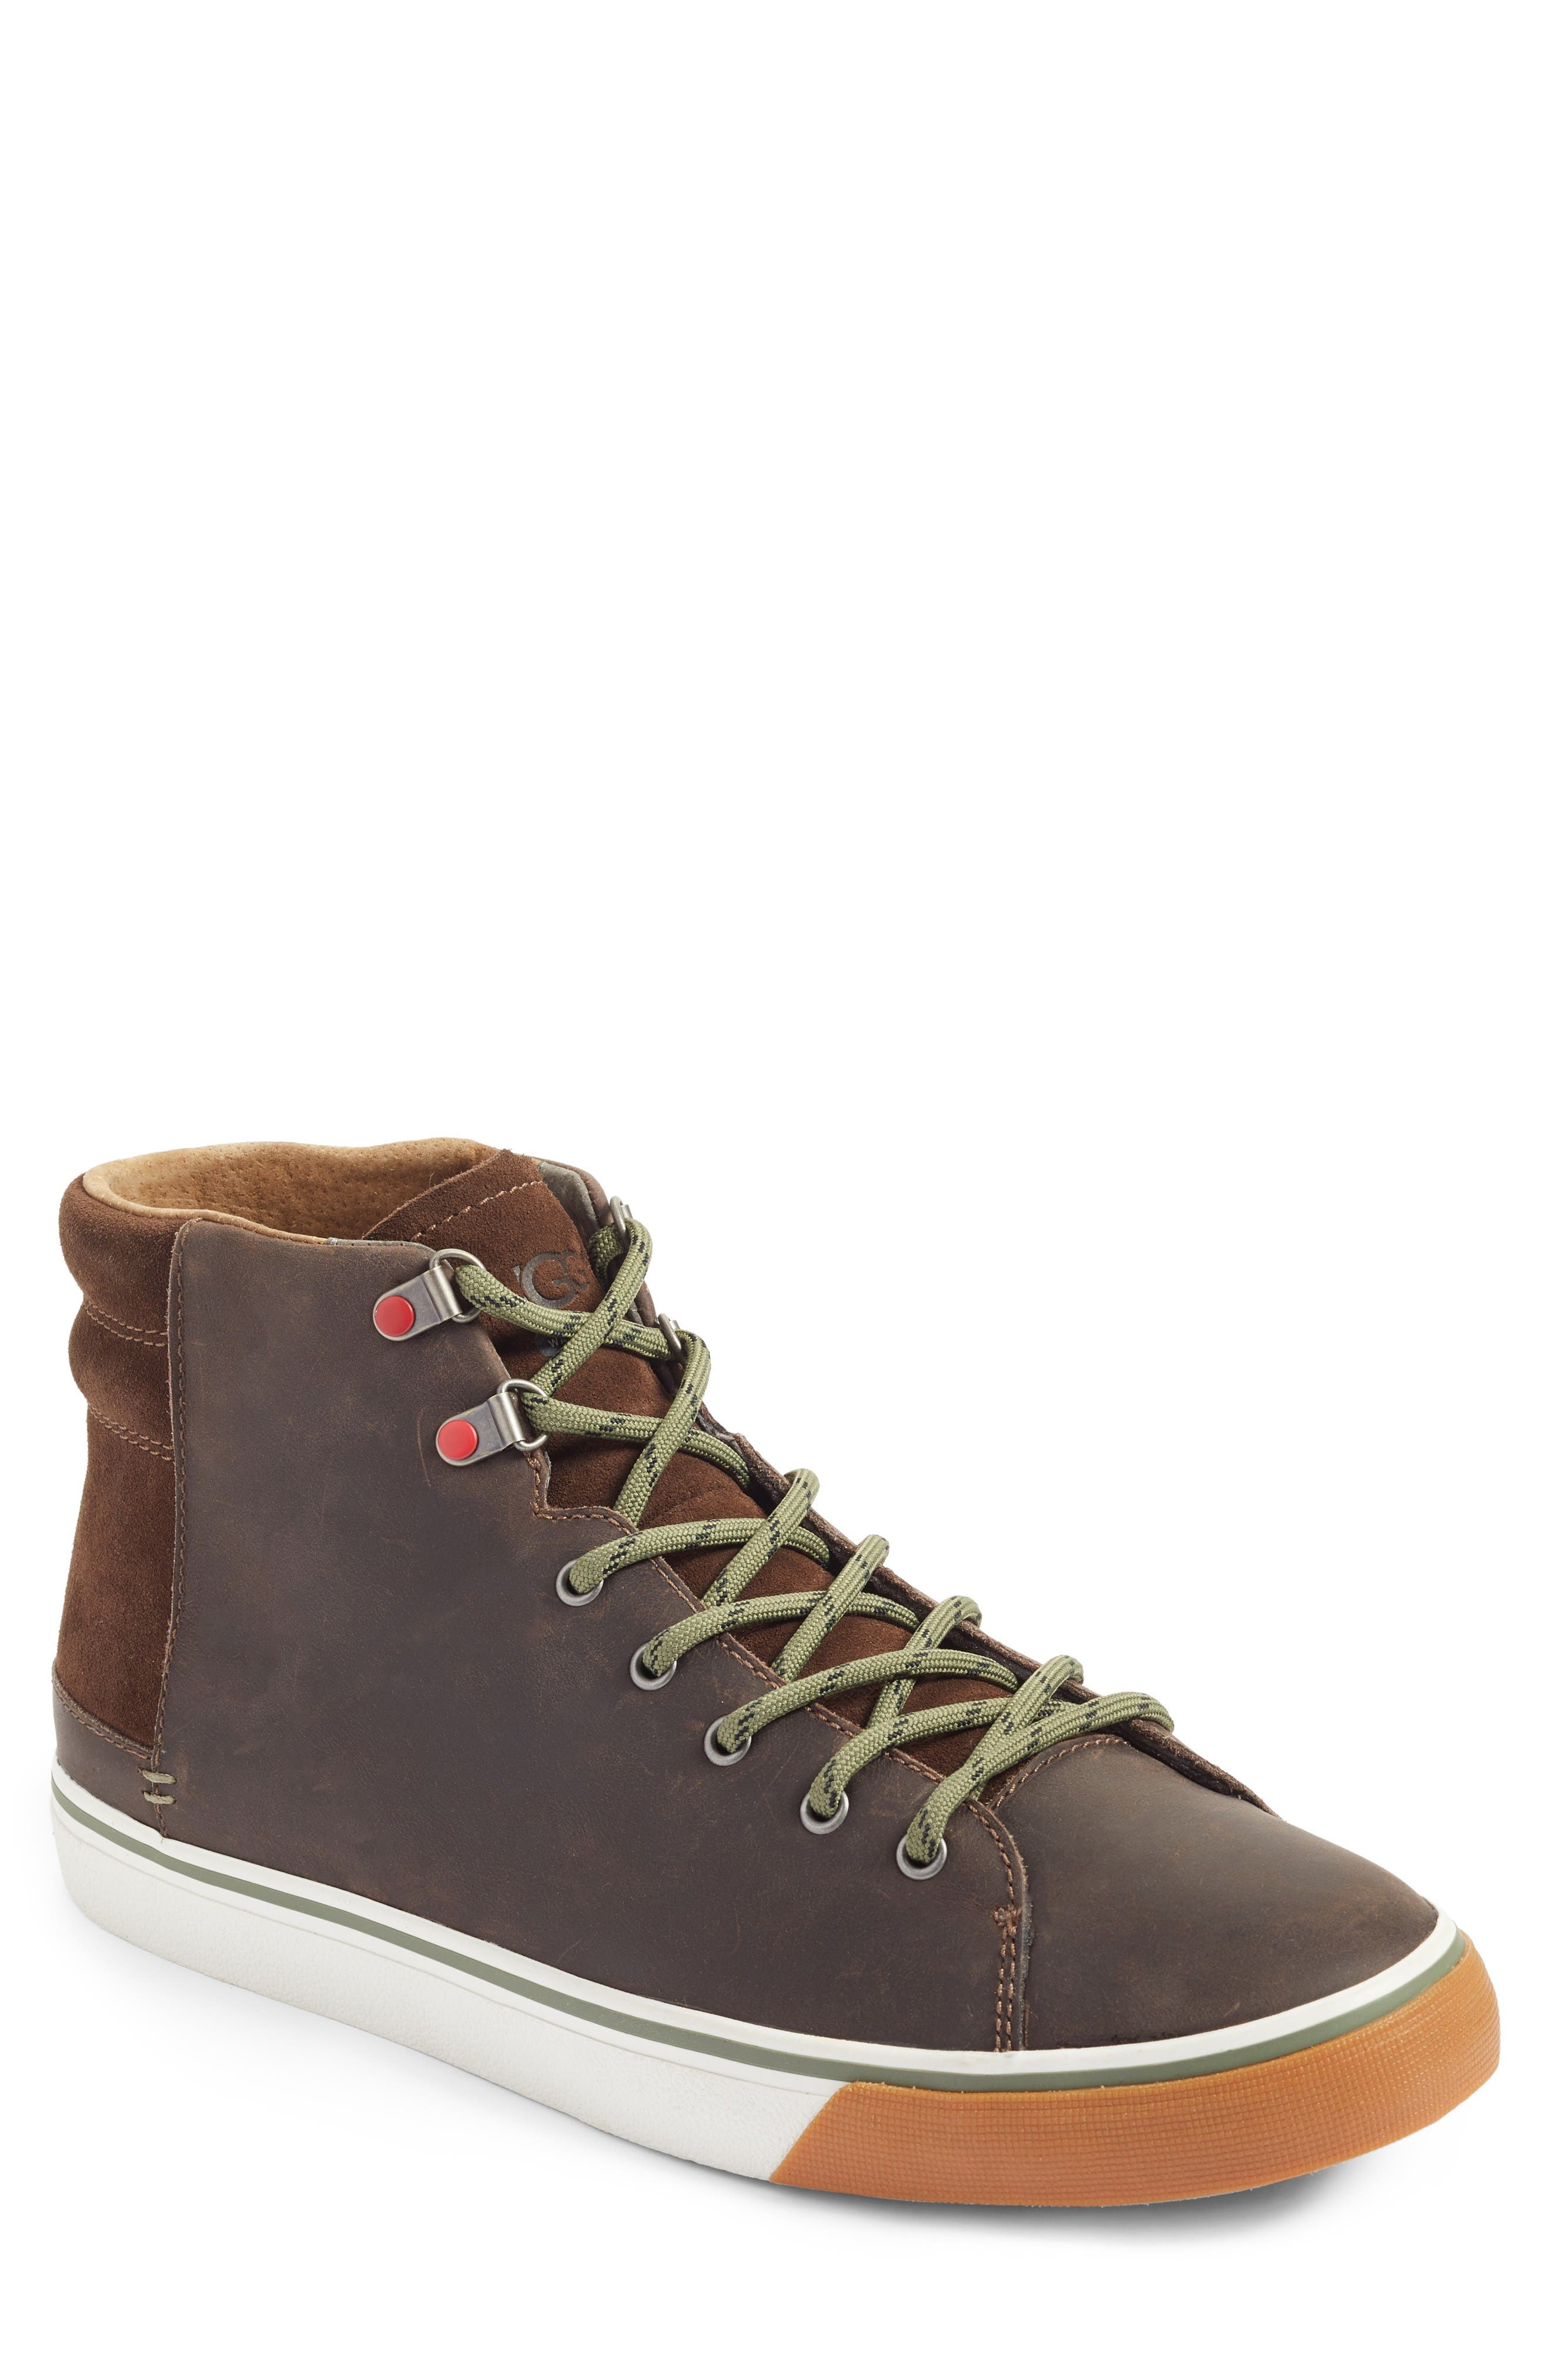 Hoyt High Top Sneaker,                             Main thumbnail 1, color,                             Grizzly